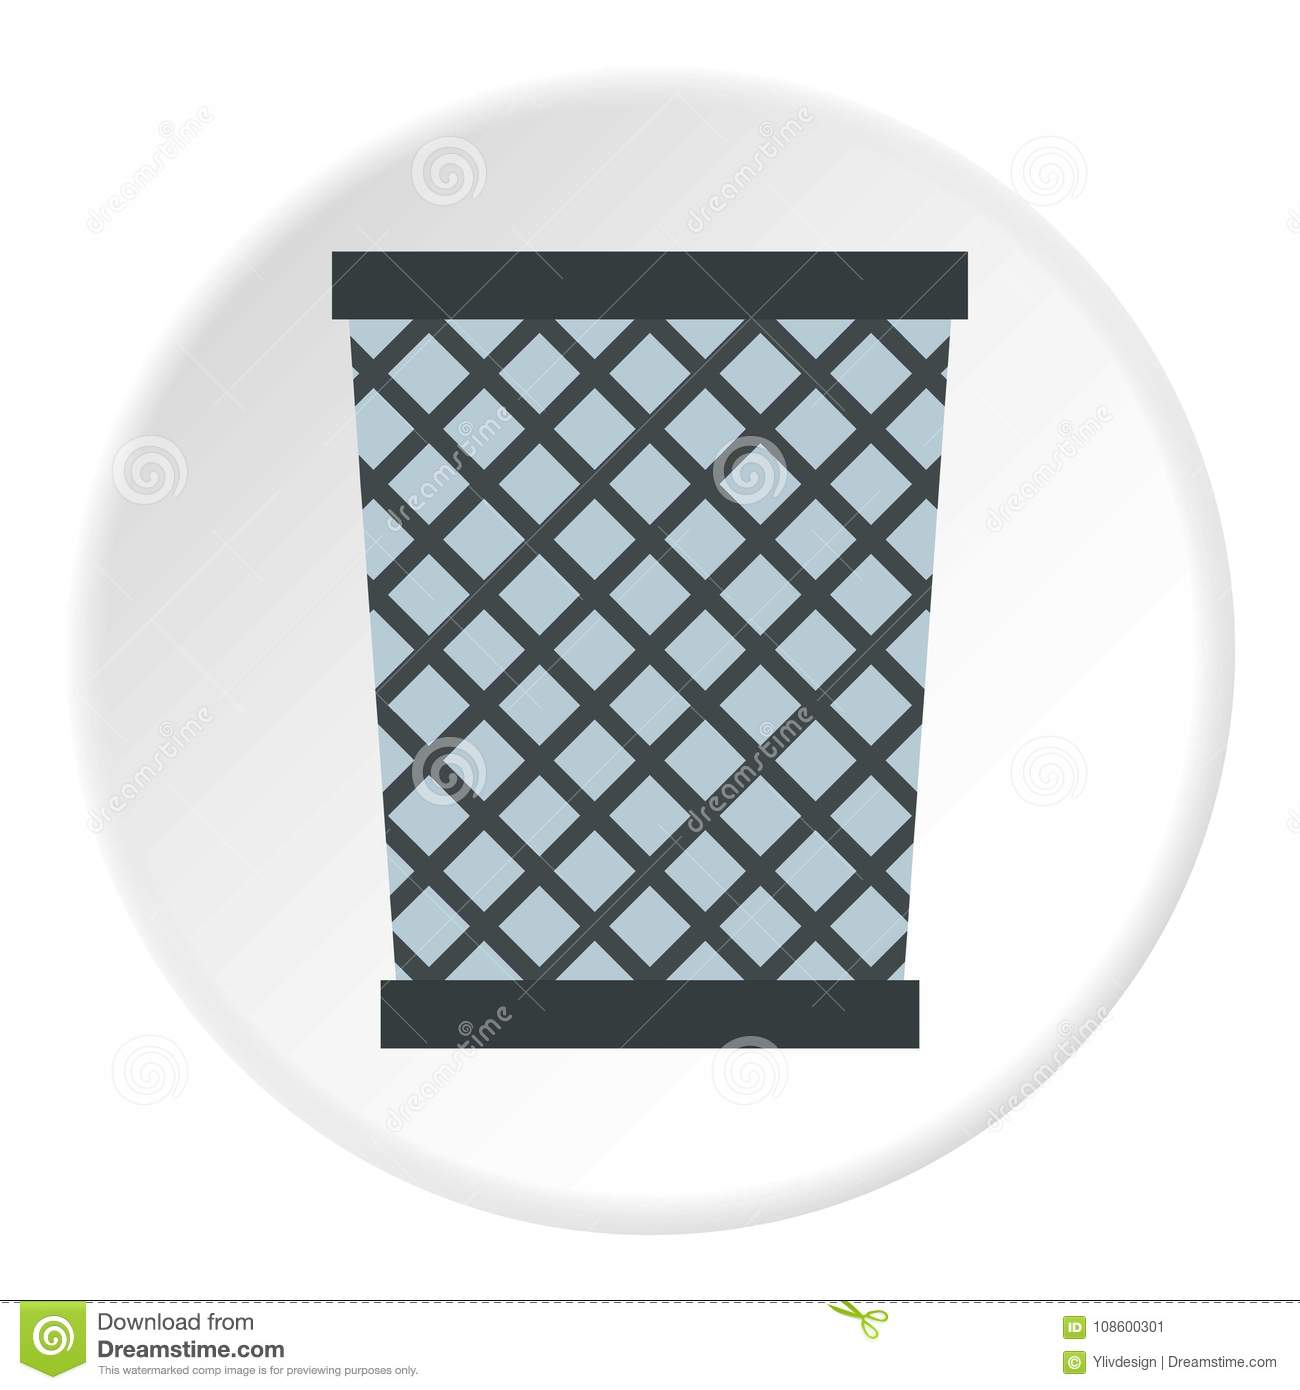 Wire metal bin icon circle stock vector. Illustration of sign ...